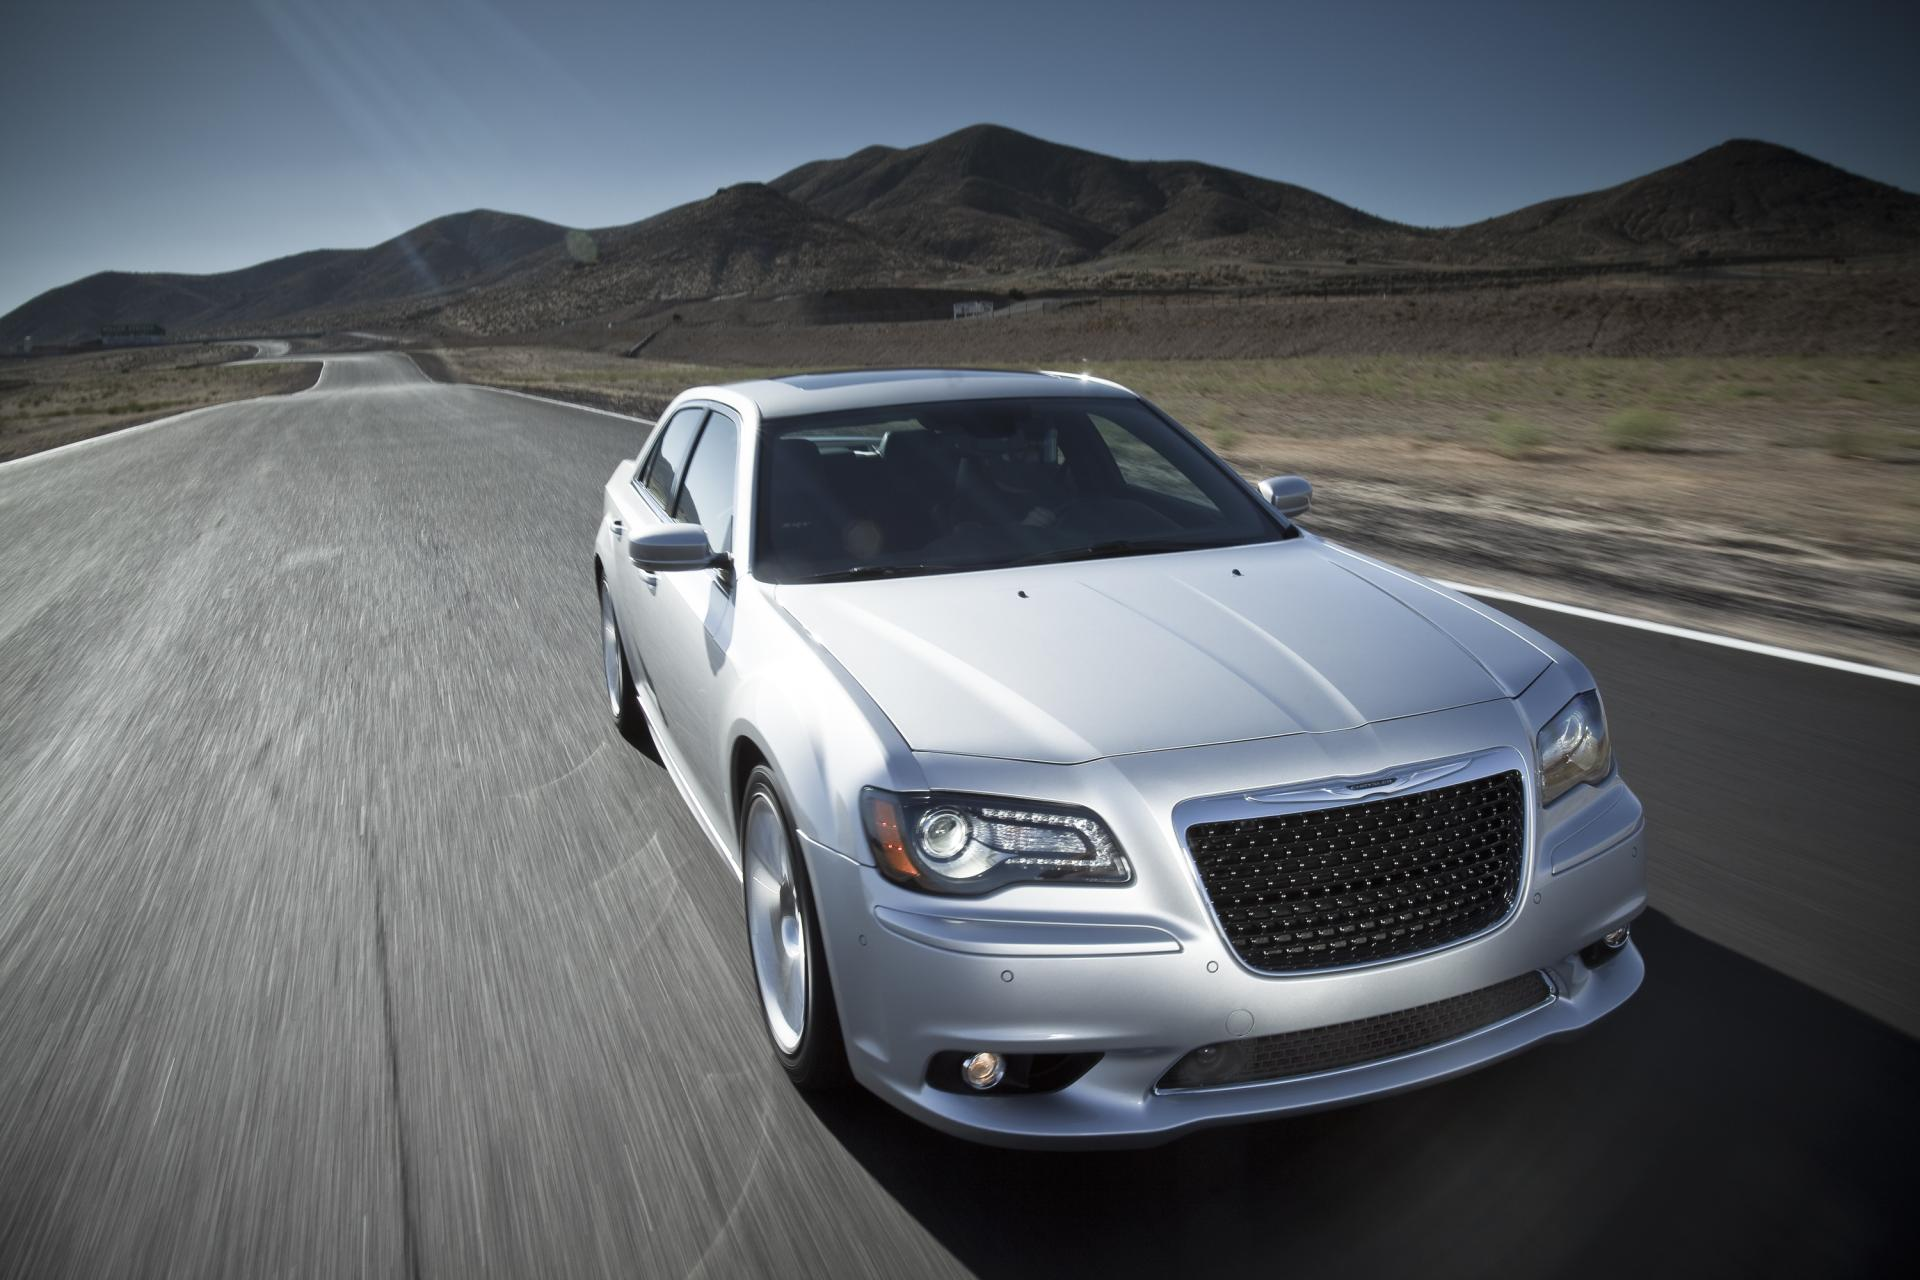 2014 chrysler 300 srt8. Cars Review. Best American Auto & Cars Review